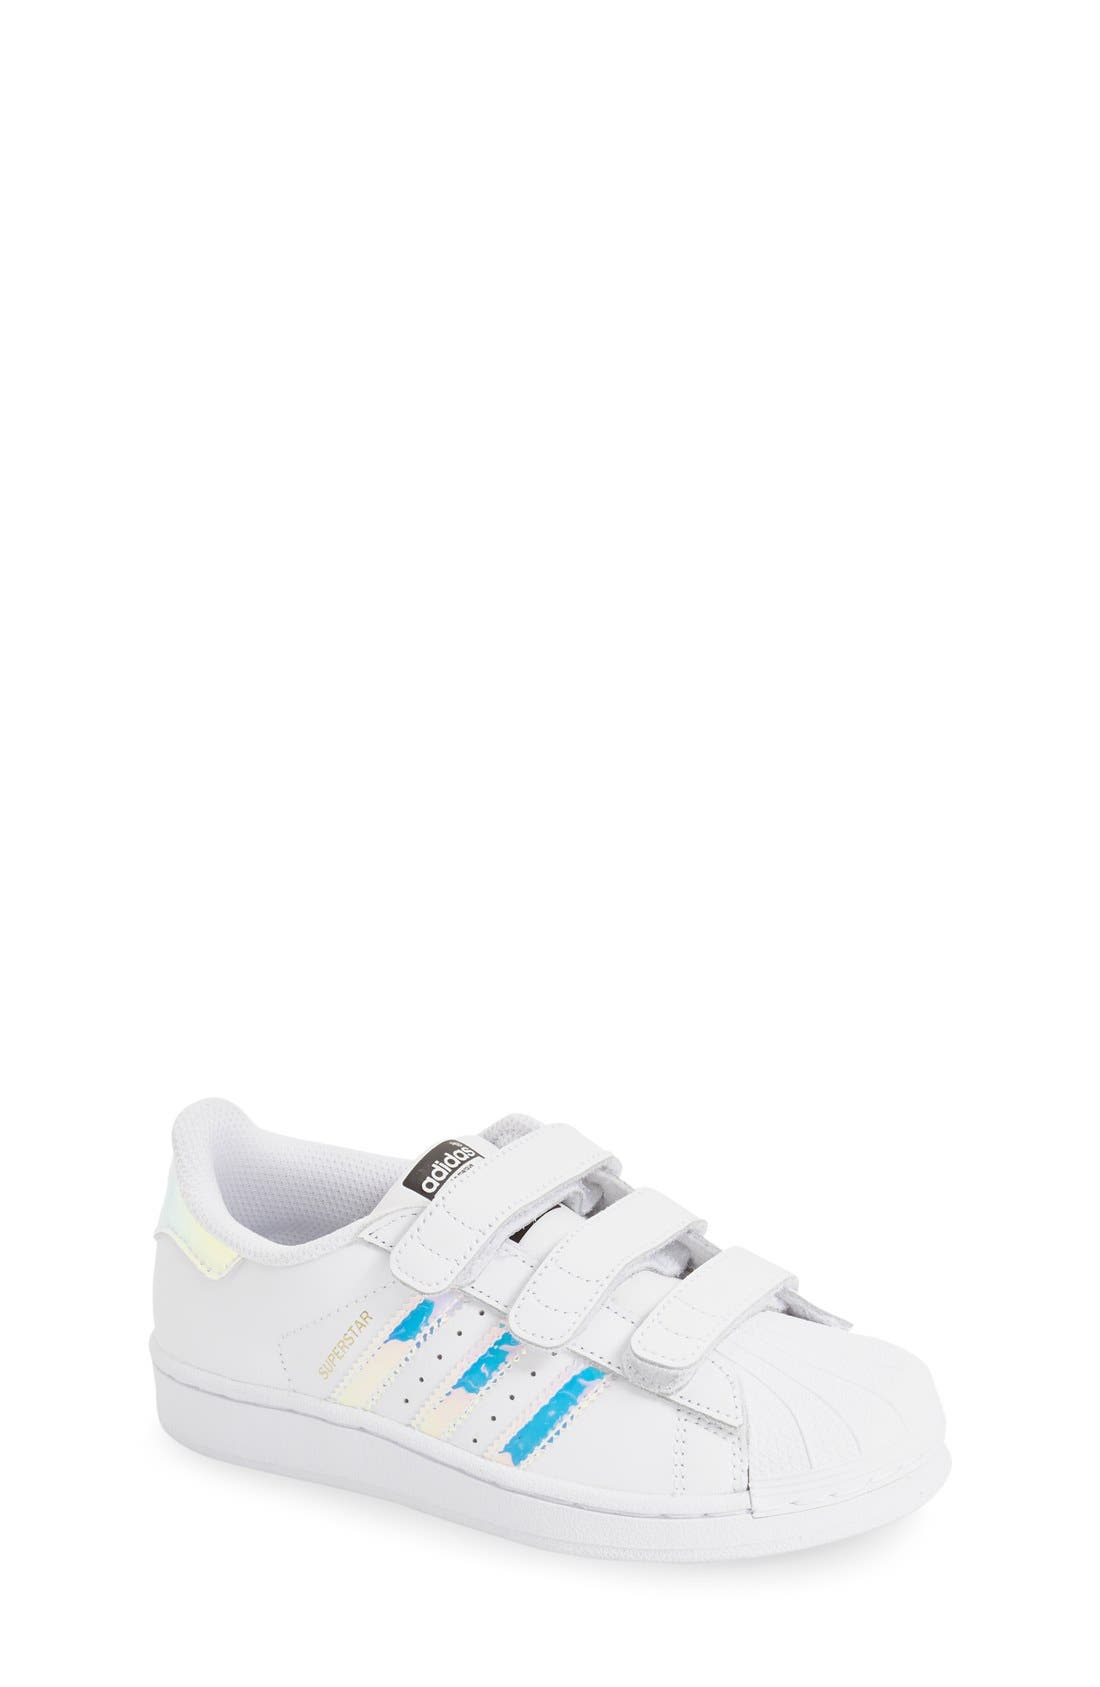 adidas Superstar - Iridescent Sneaker (Baby, Walker, Toddler & Little Kid)